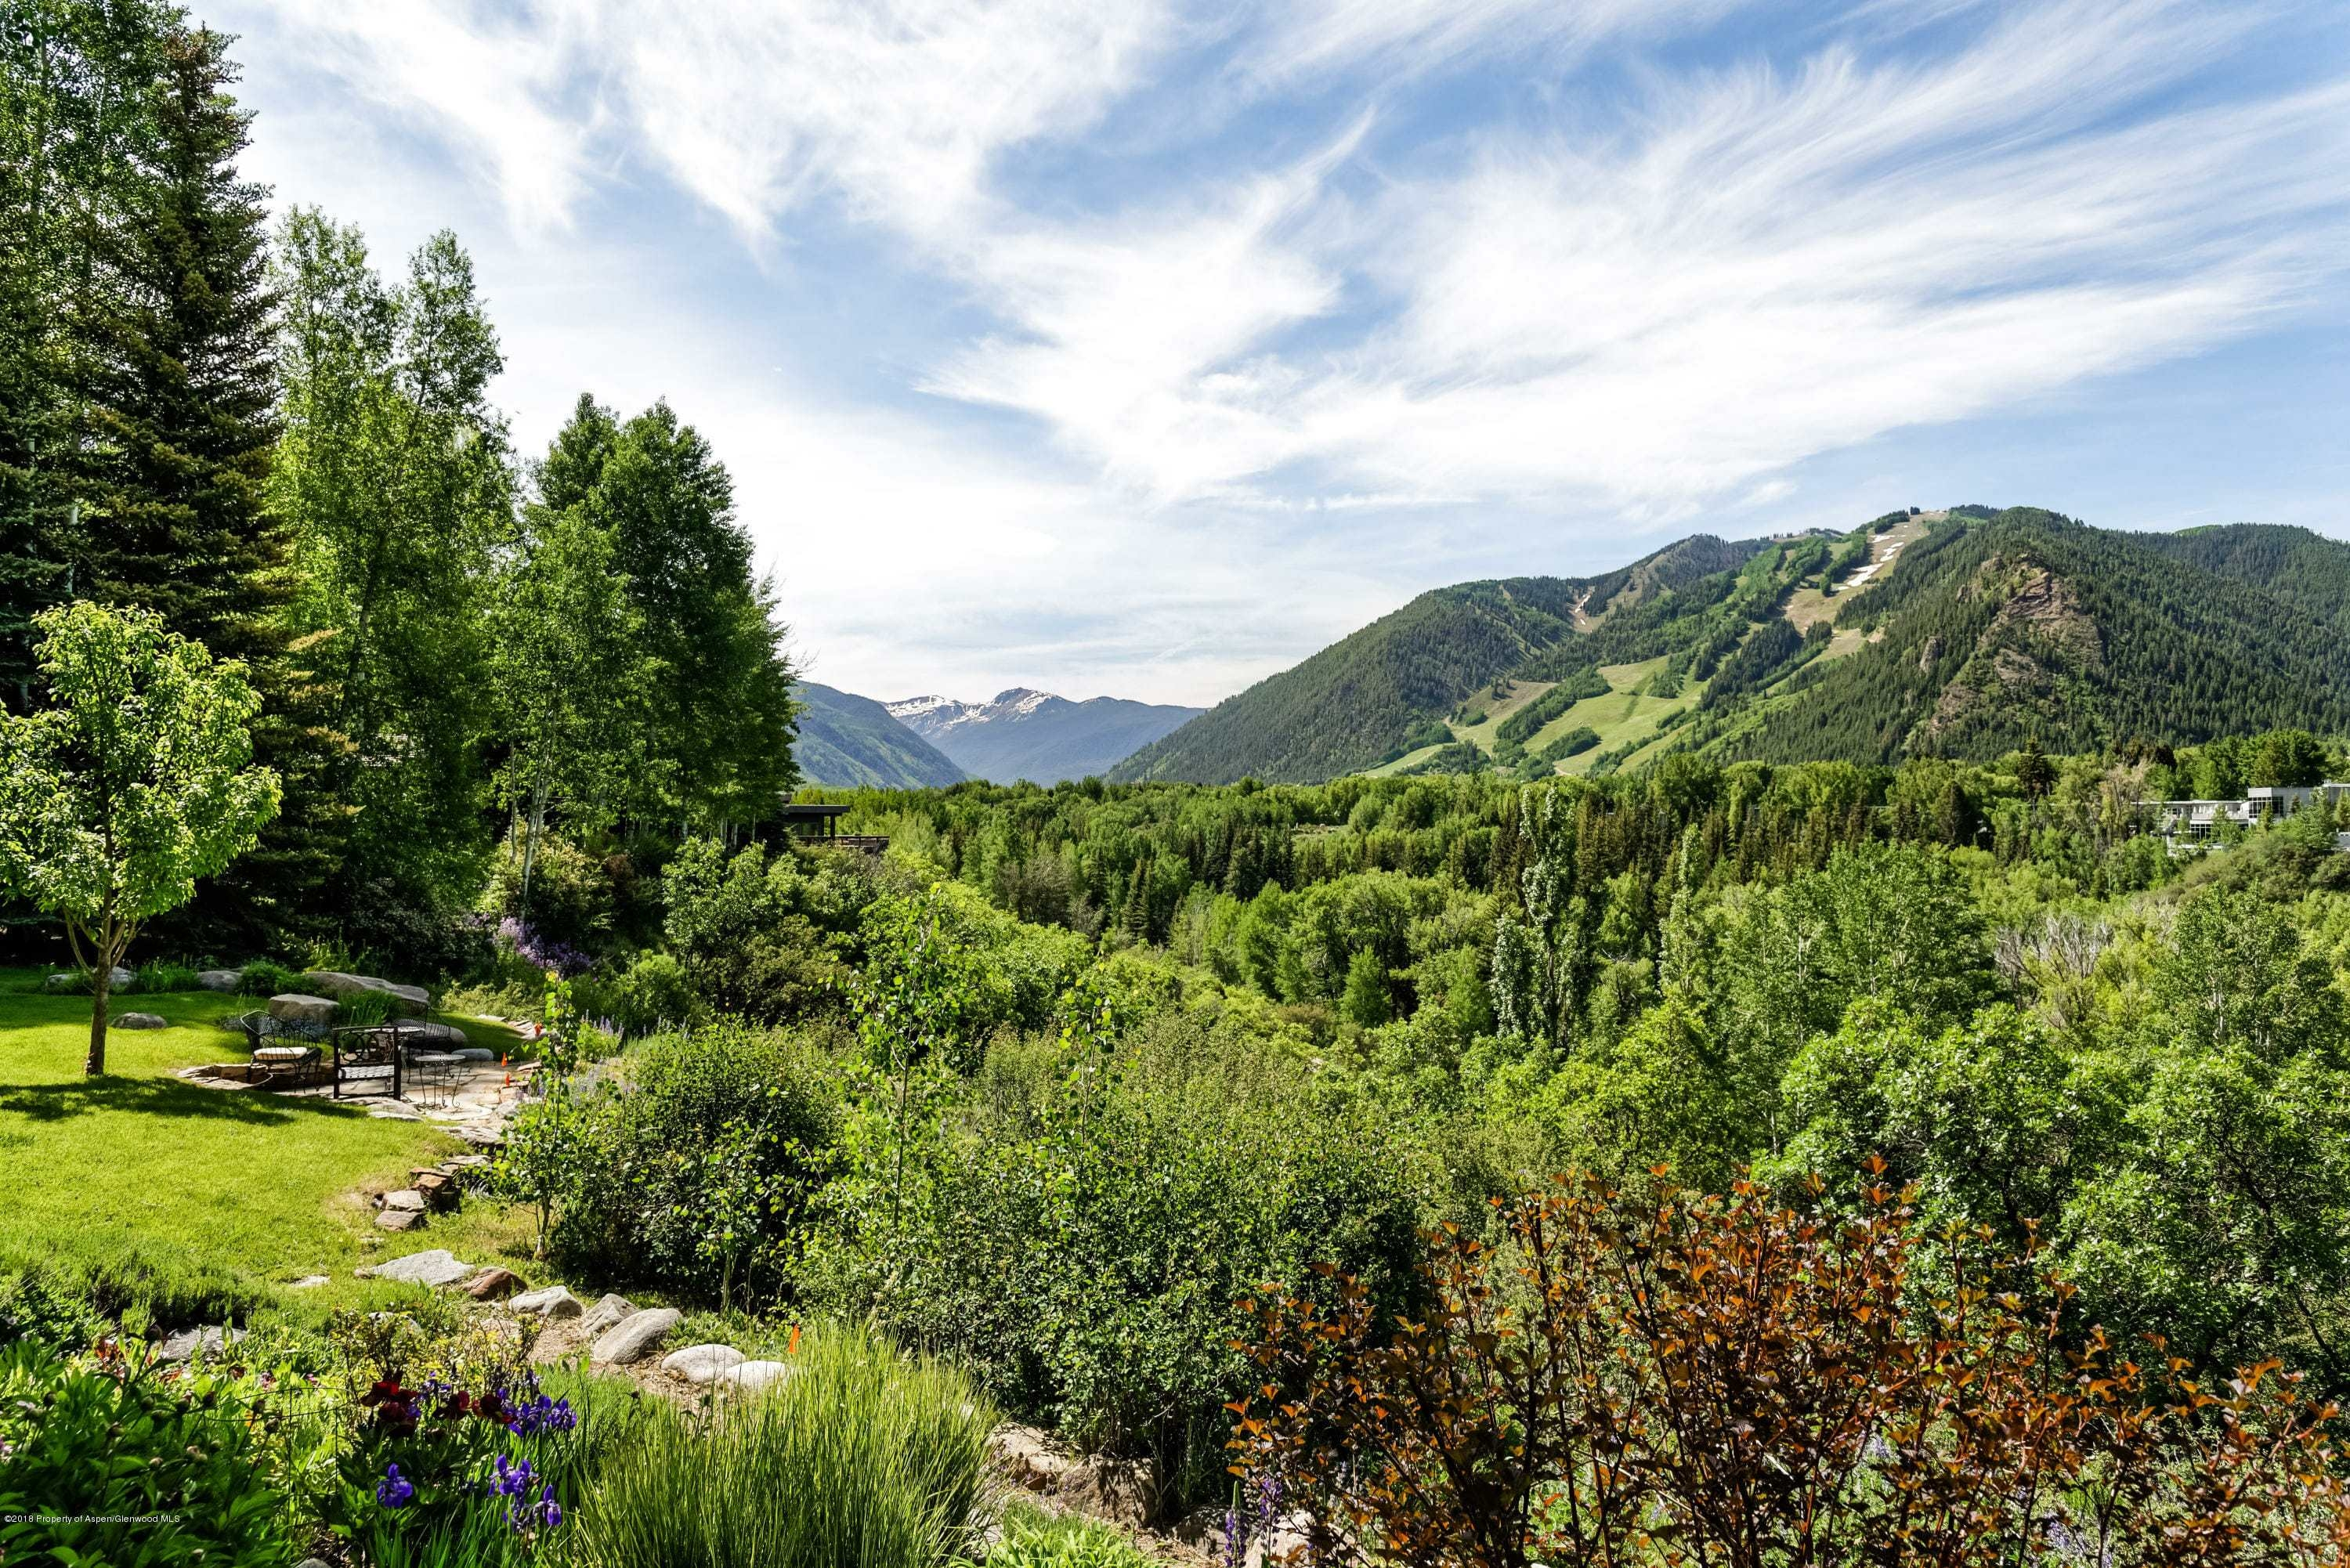 848 Willoughby Way Aspen- Before: Closed at $12.1M; After: Closed 7 Mos. Later at $14.65M Thumbnail